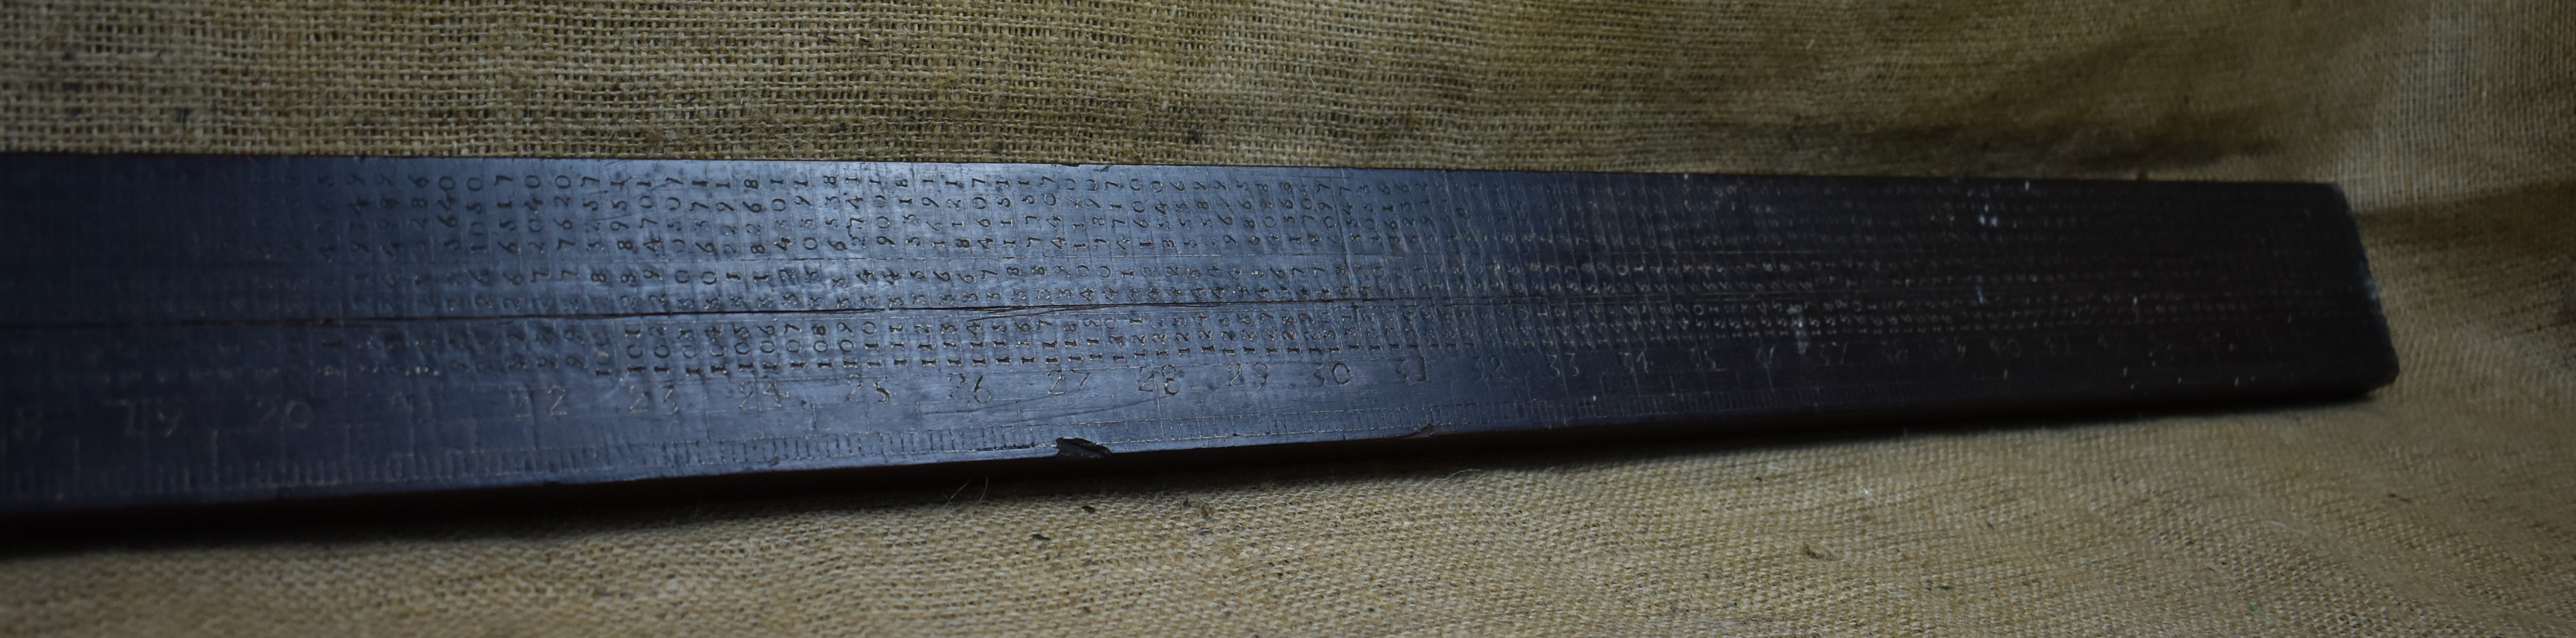 "48"" Slide rule inscribed and dated RD 1836."